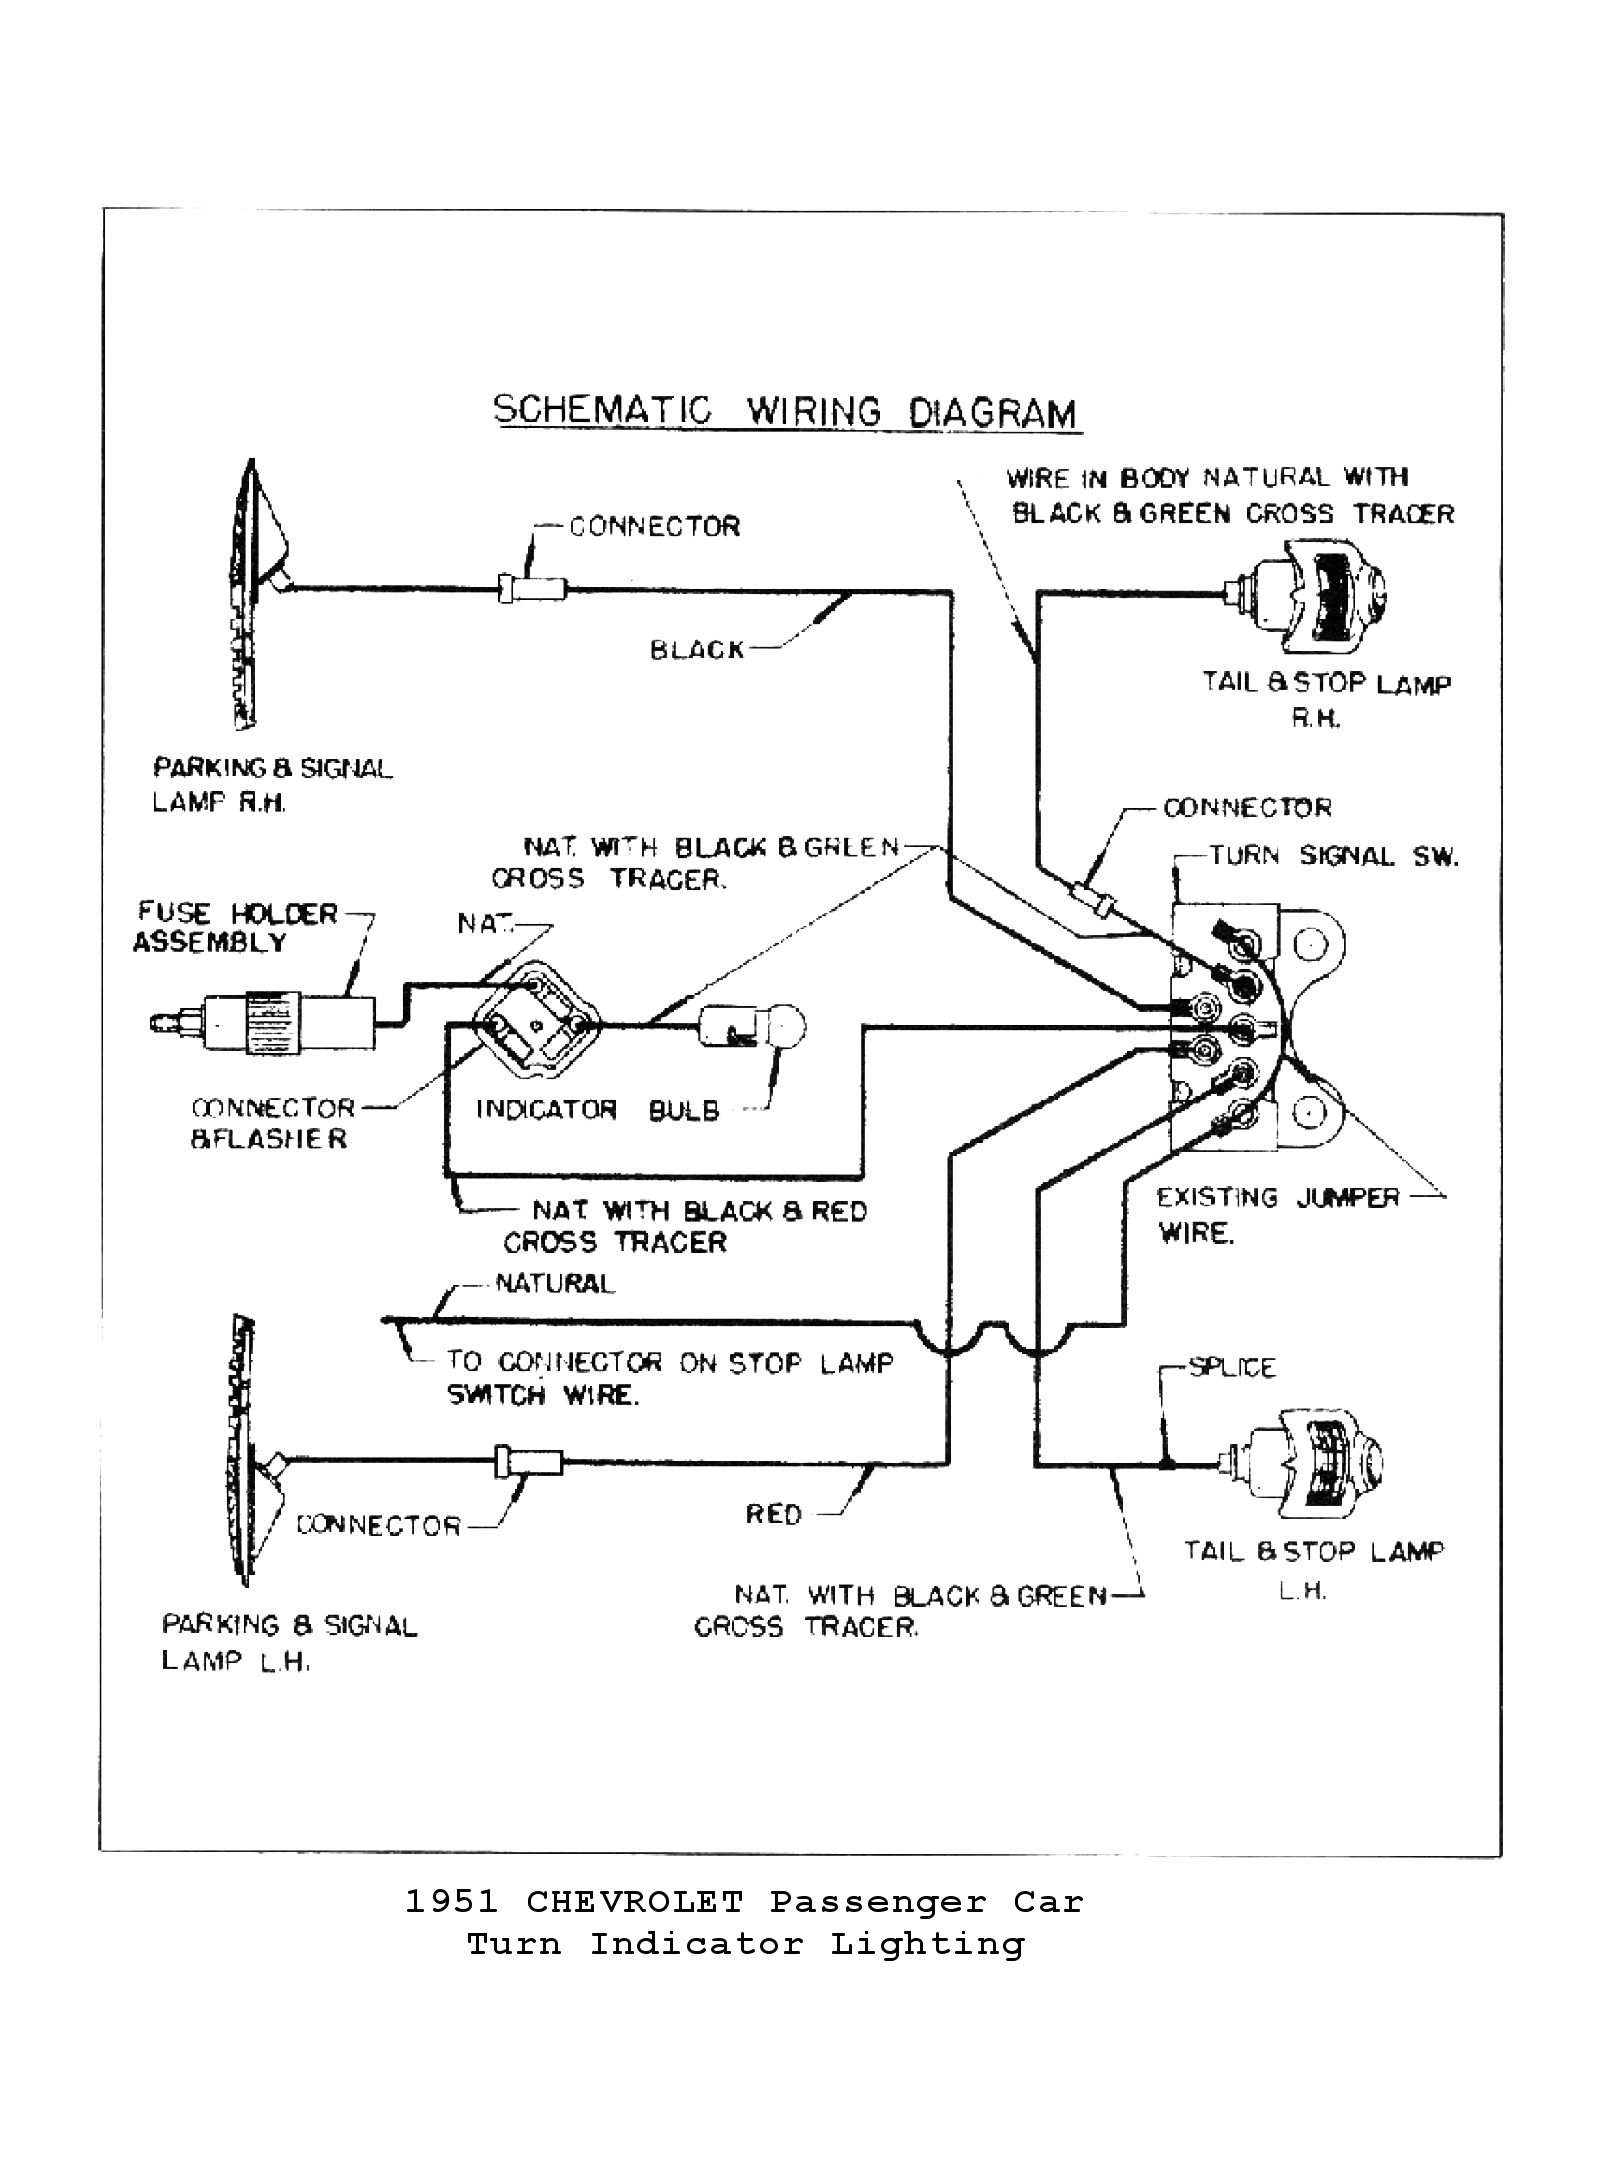 5152turnsignals 1949 chevy pickup wiring diagram on 1949 download wirning diagrams Basic Engine Wiring Diagram Chevy at suagrazia.org